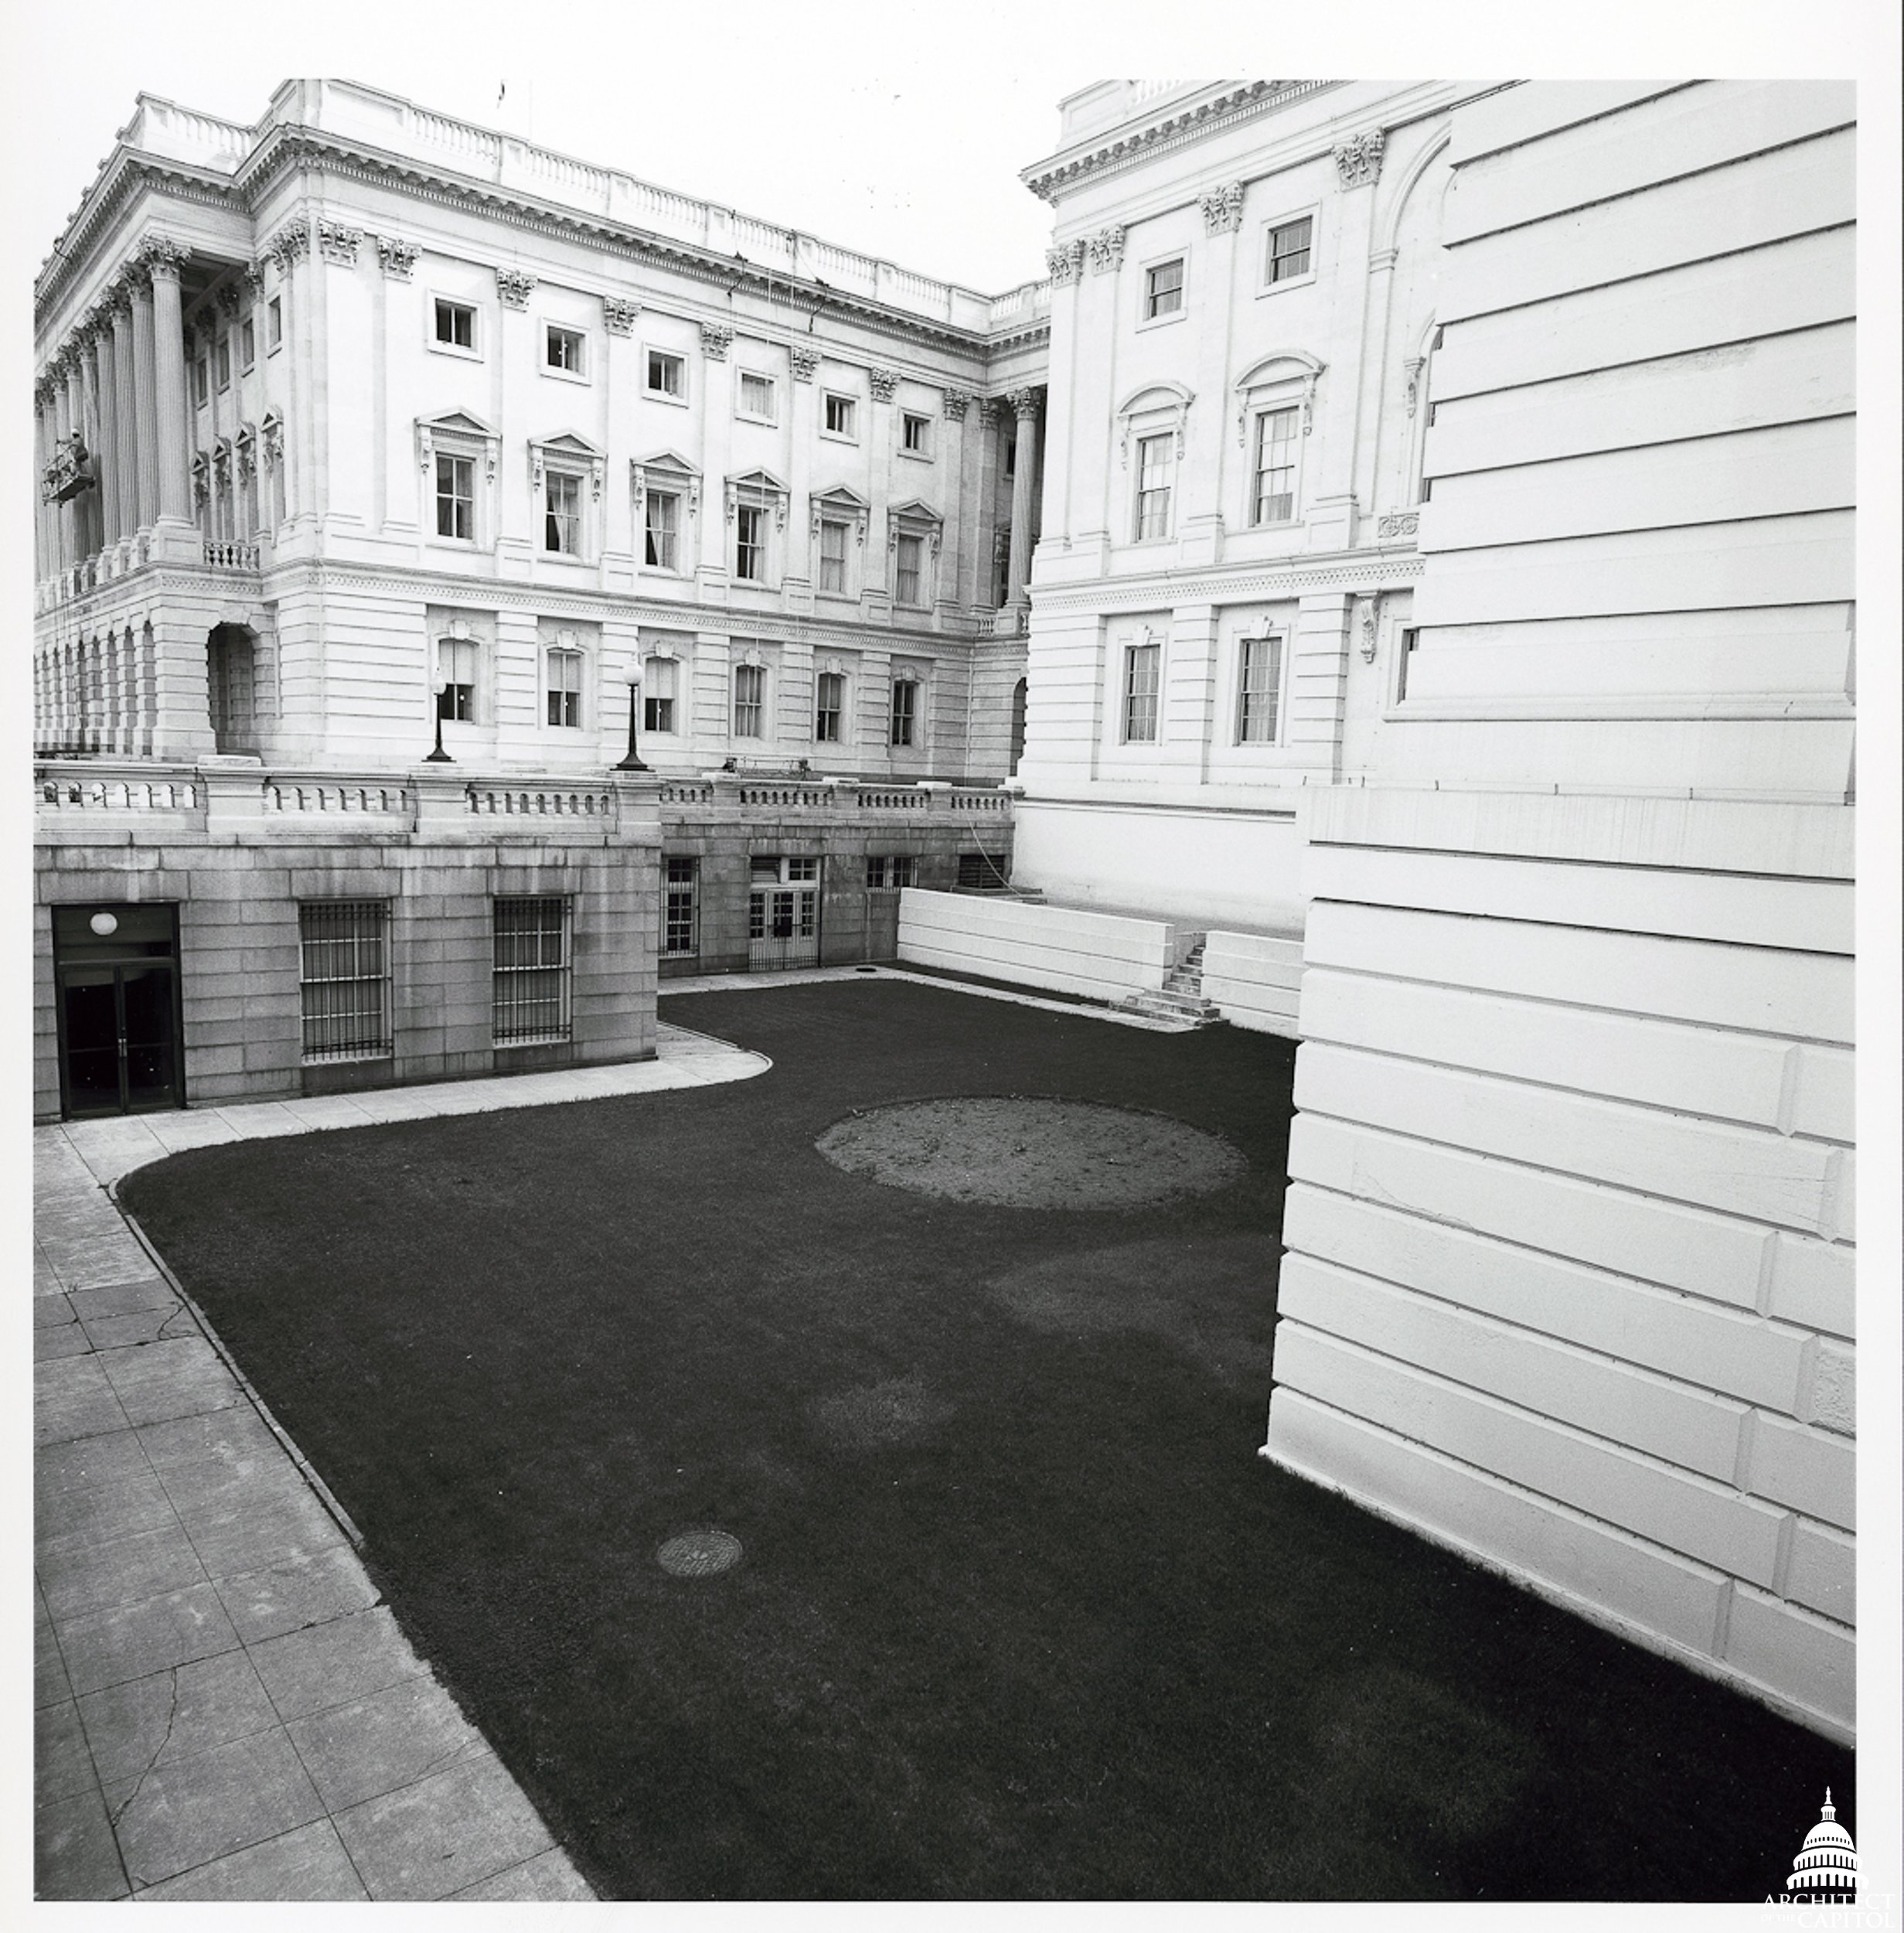 View of the U.S. Capitol before the courtyards were transformed into meeting rooms, offices and connecting hallways in the building's basement level.